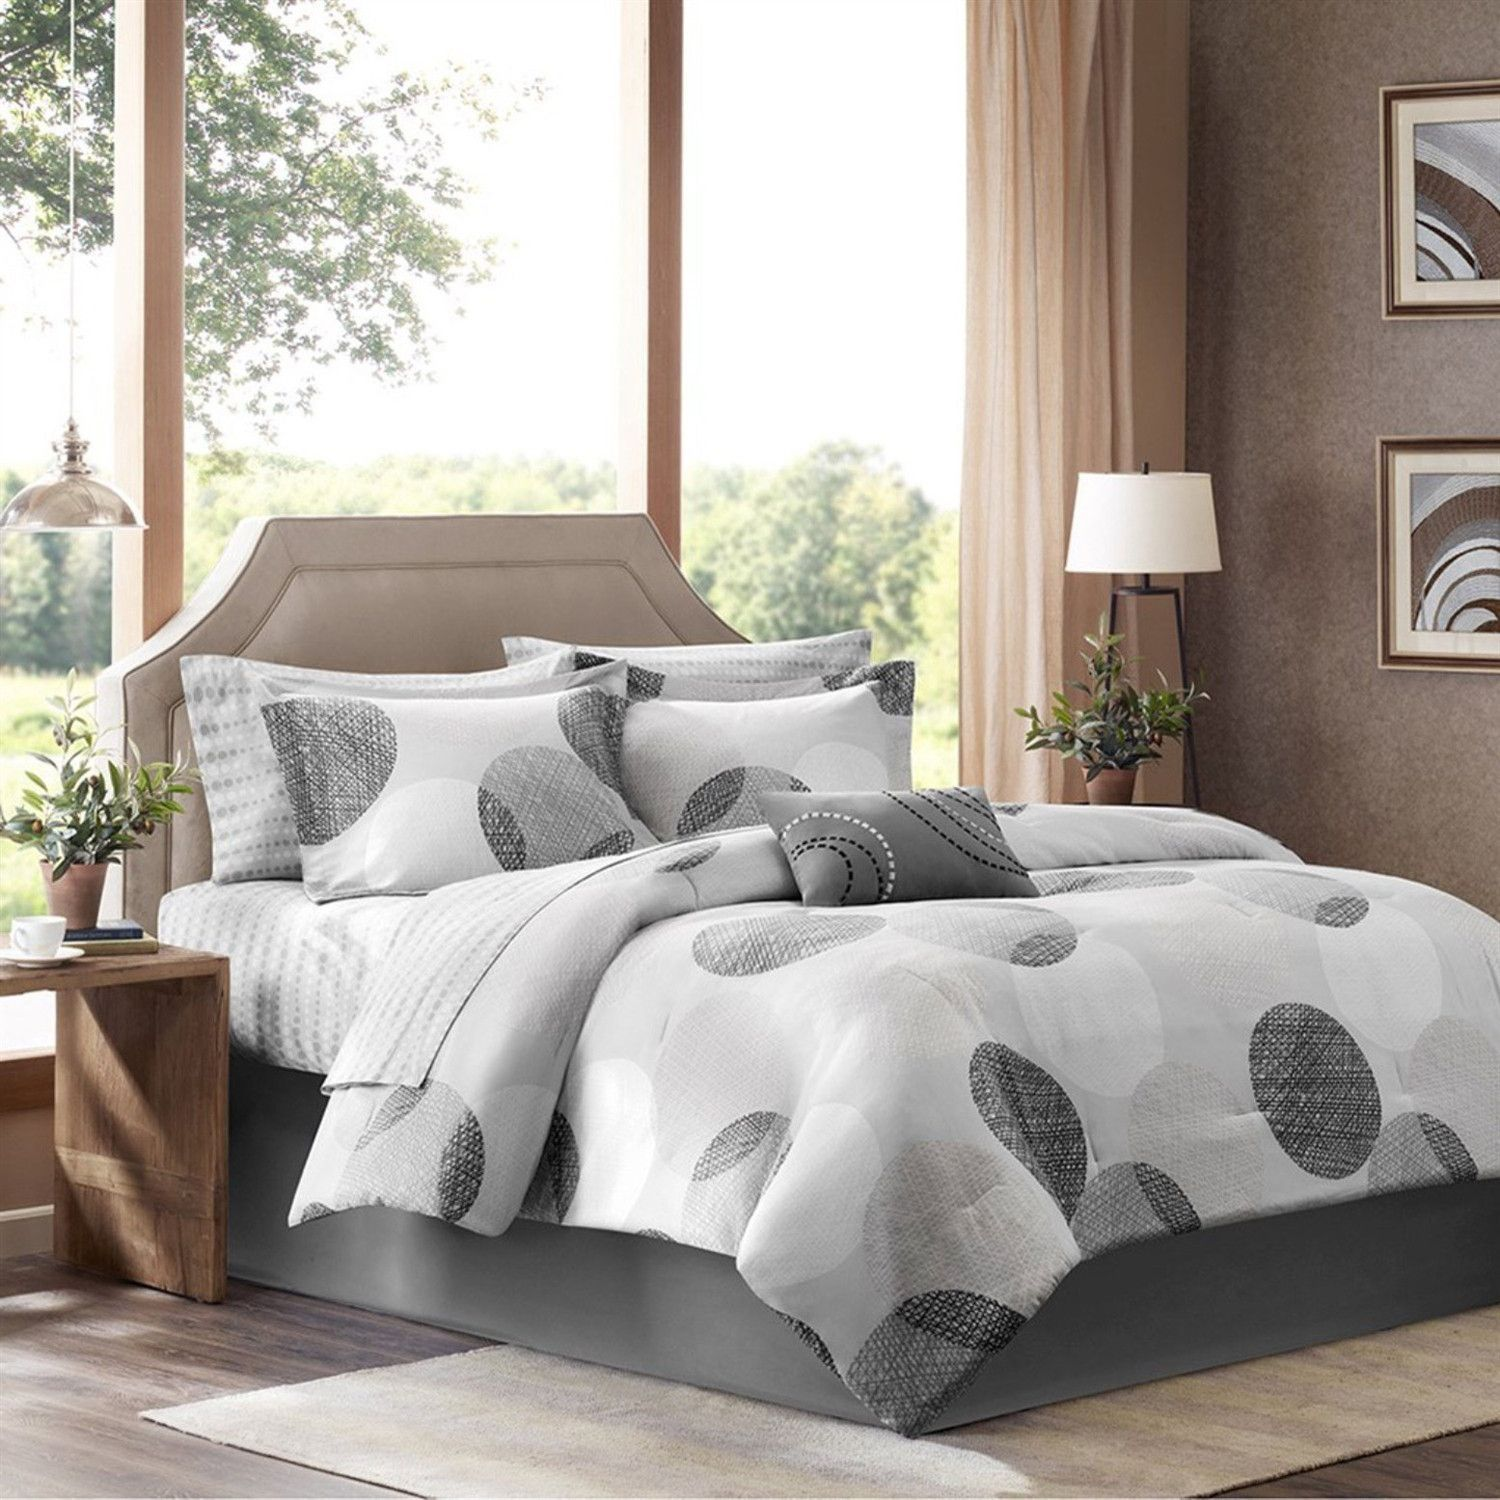 Best King Size Modern 9 Piece Bed Bag Comforter Set With Grey 640 x 480